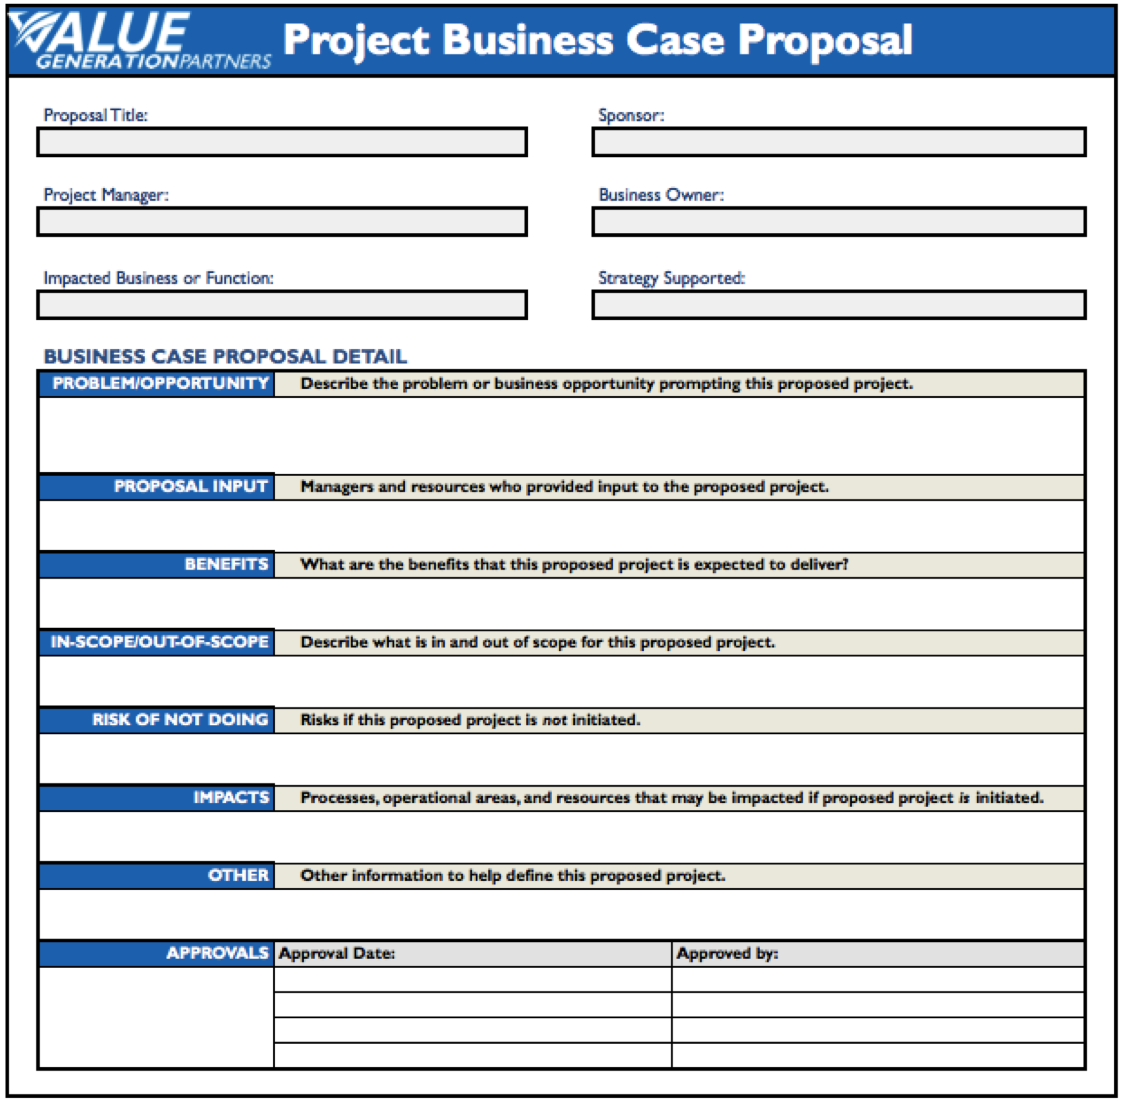 Regardless of your project business case proposal template format regardless of your project business case proposal template format wdtpcn00 flashek